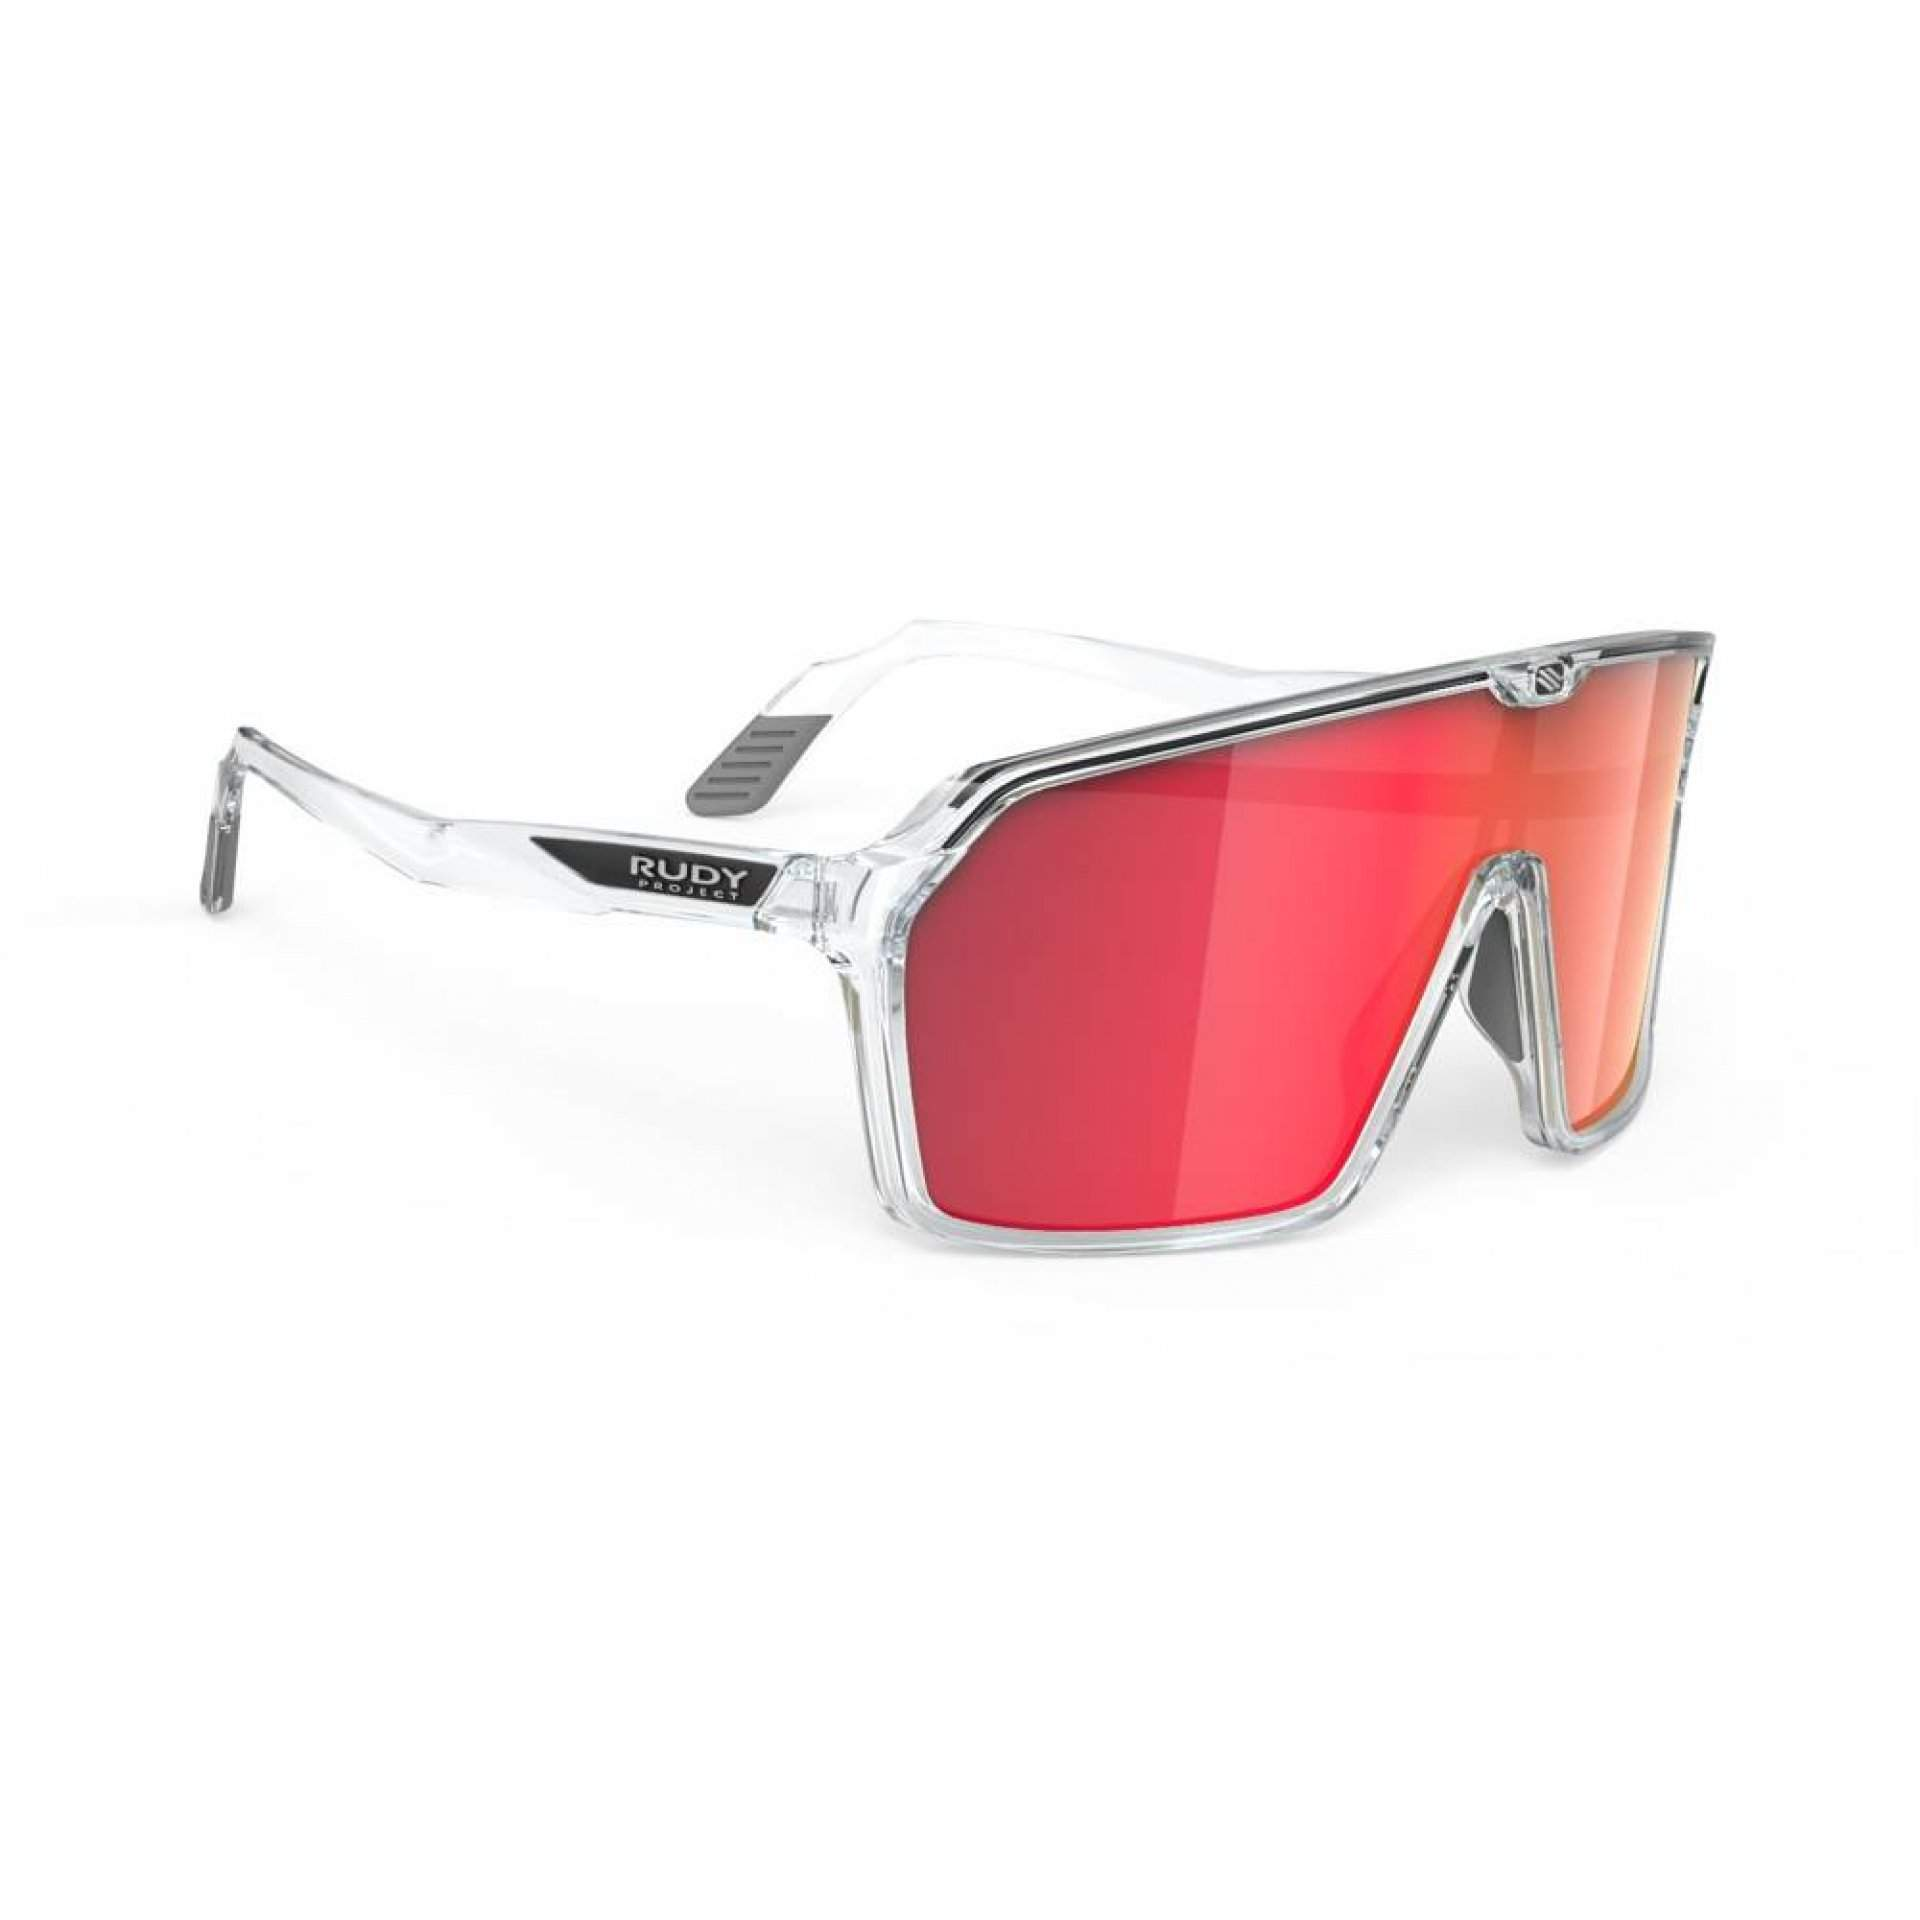 OKULARY RUDY PROJECT SPINSHIELD CRYSTAL GLOSS MULTILASER RED 1